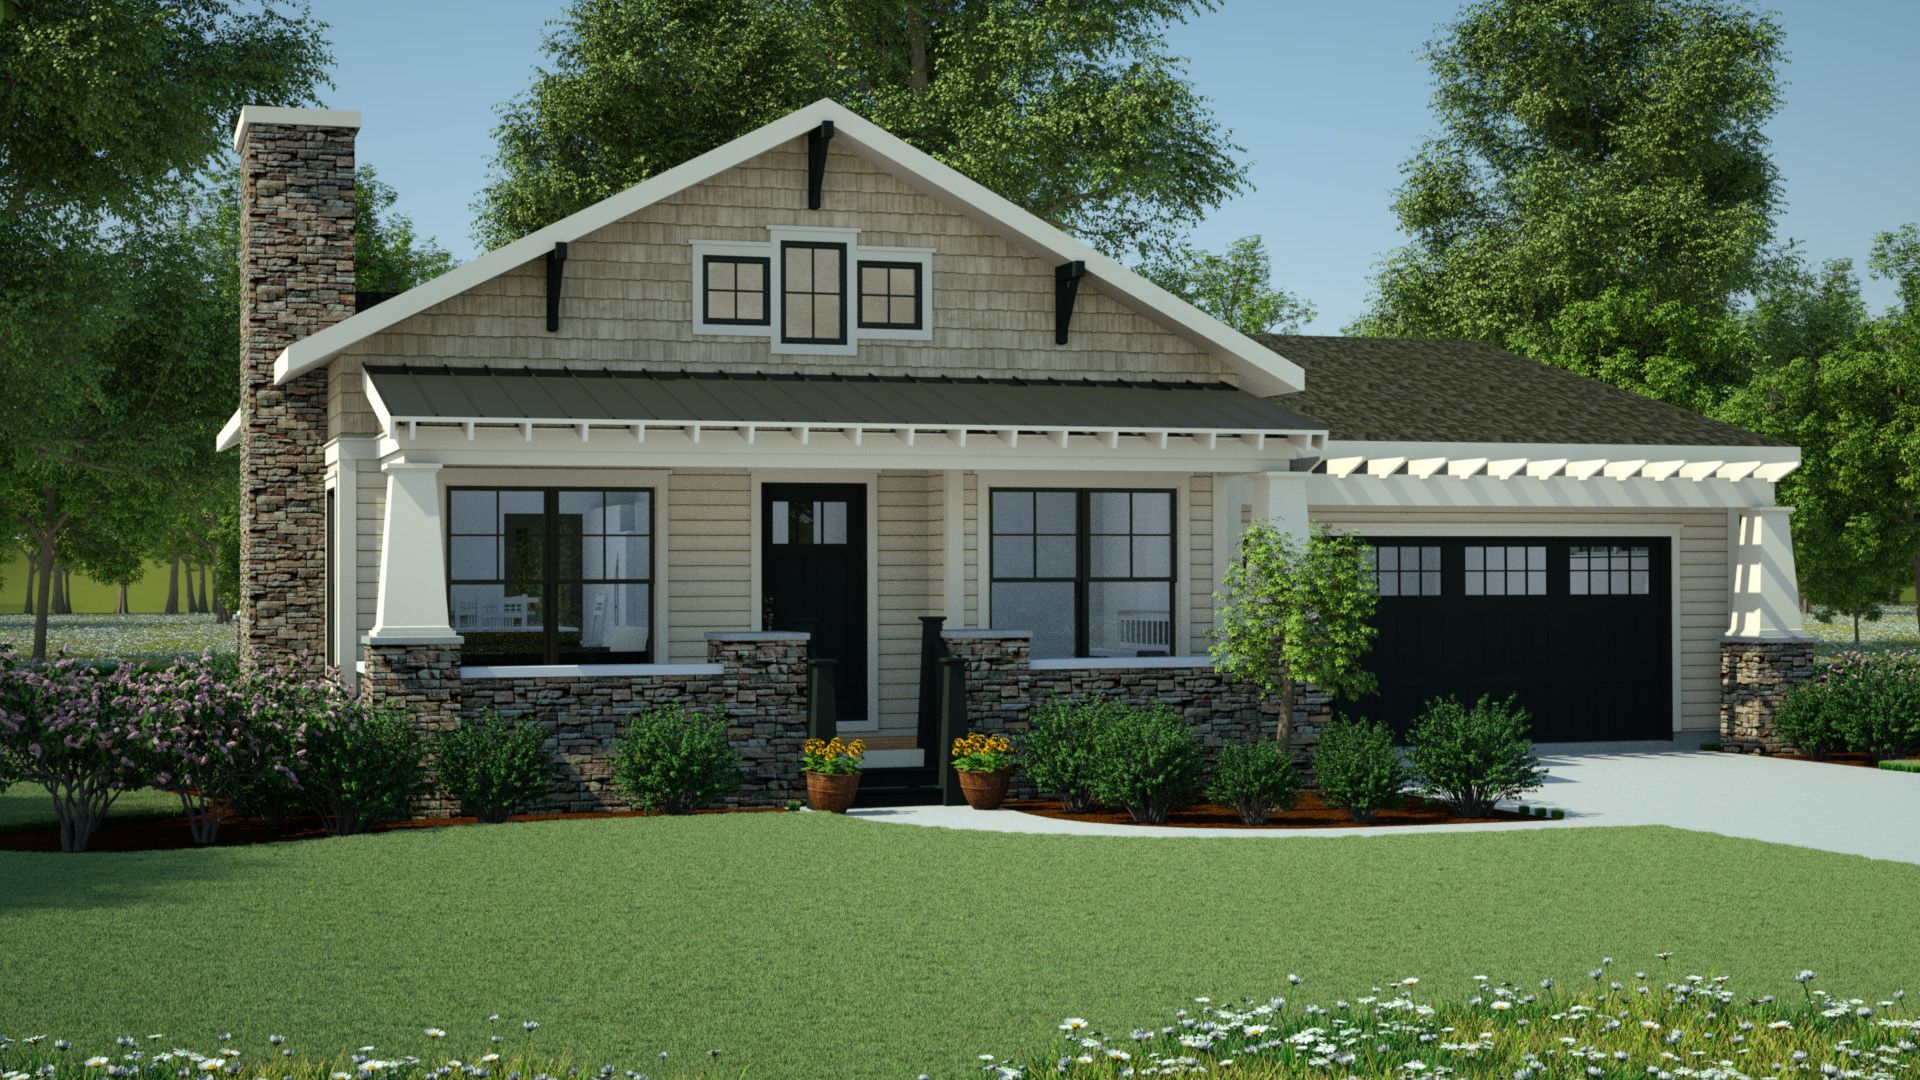 one story cottage style house plans plan 18267be simply simple one story bungalow bungalow house plans small bungalow house 7812